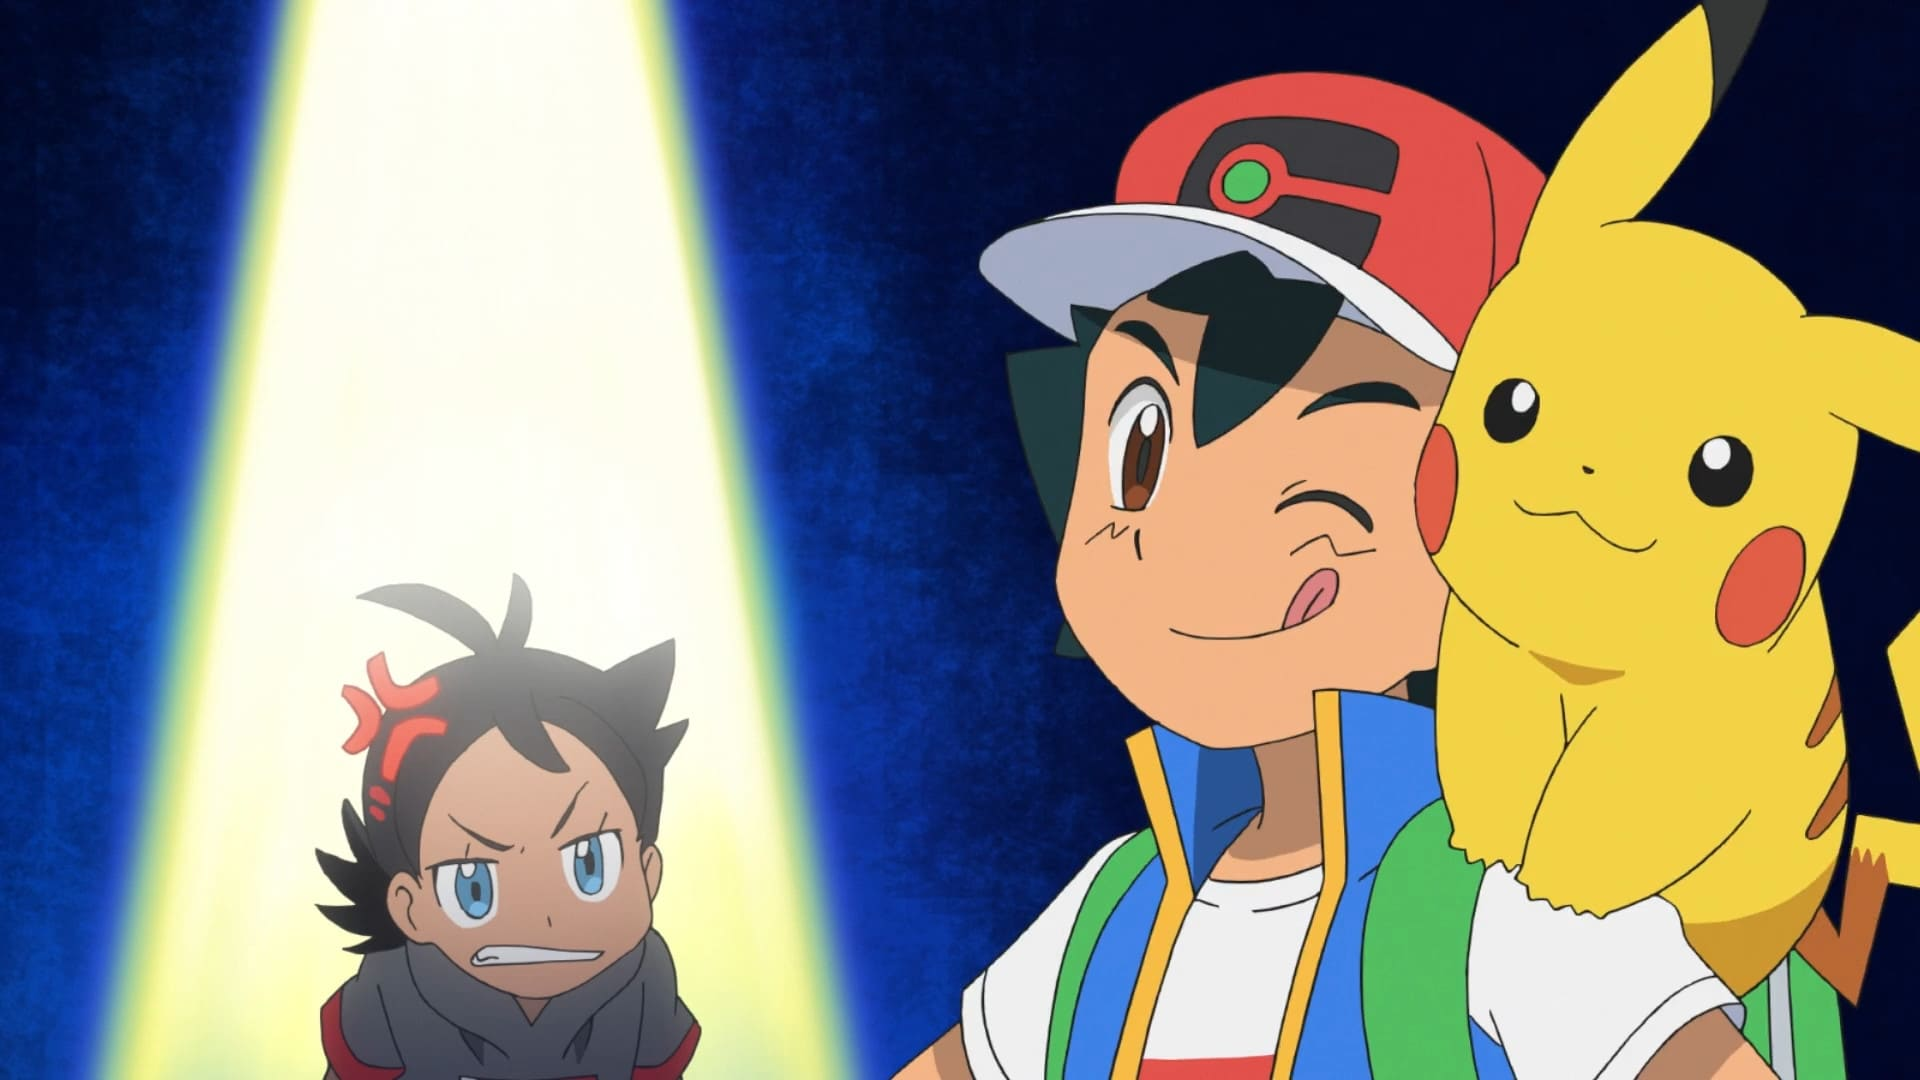 Pokémon Season 23 :Episode 26  Splash, Dash, and Smash for the Crown! Slowking's Crowning!